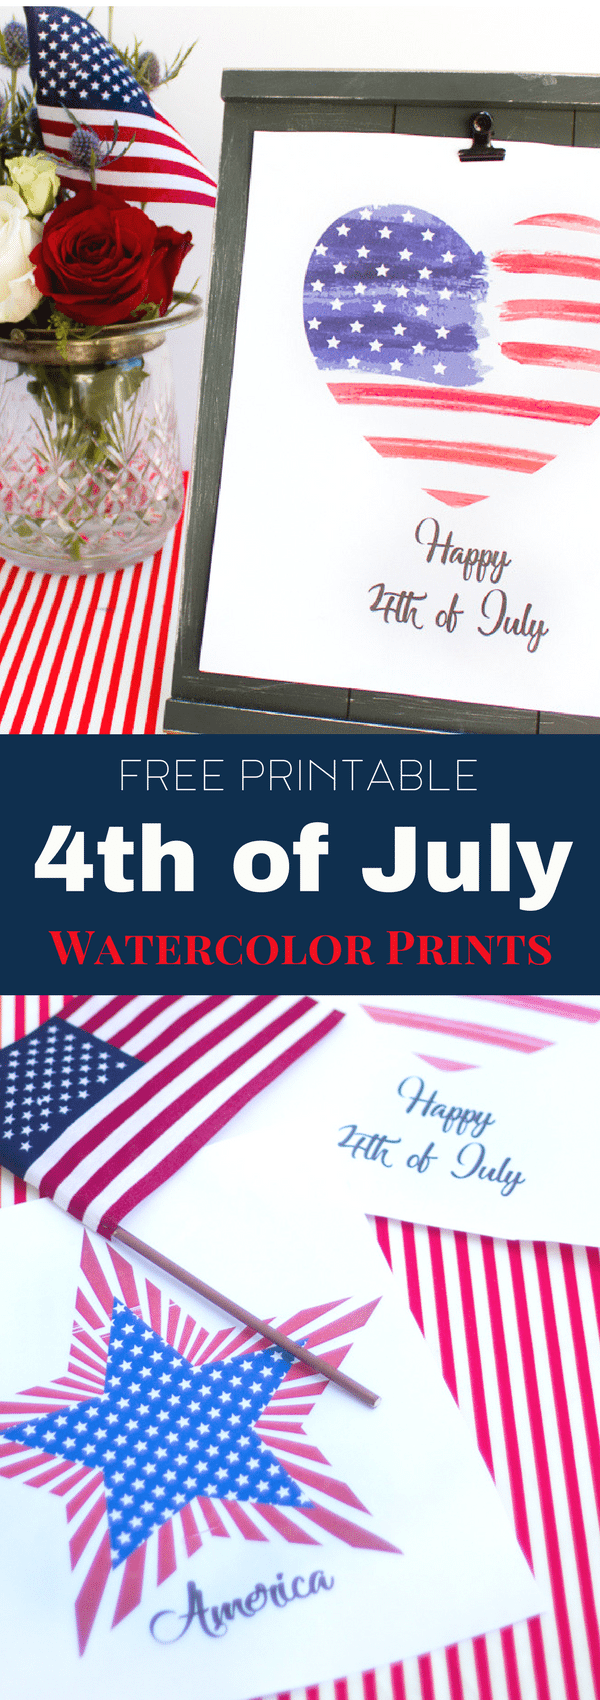 Free printable watercolor 4th of July patriotic prints.